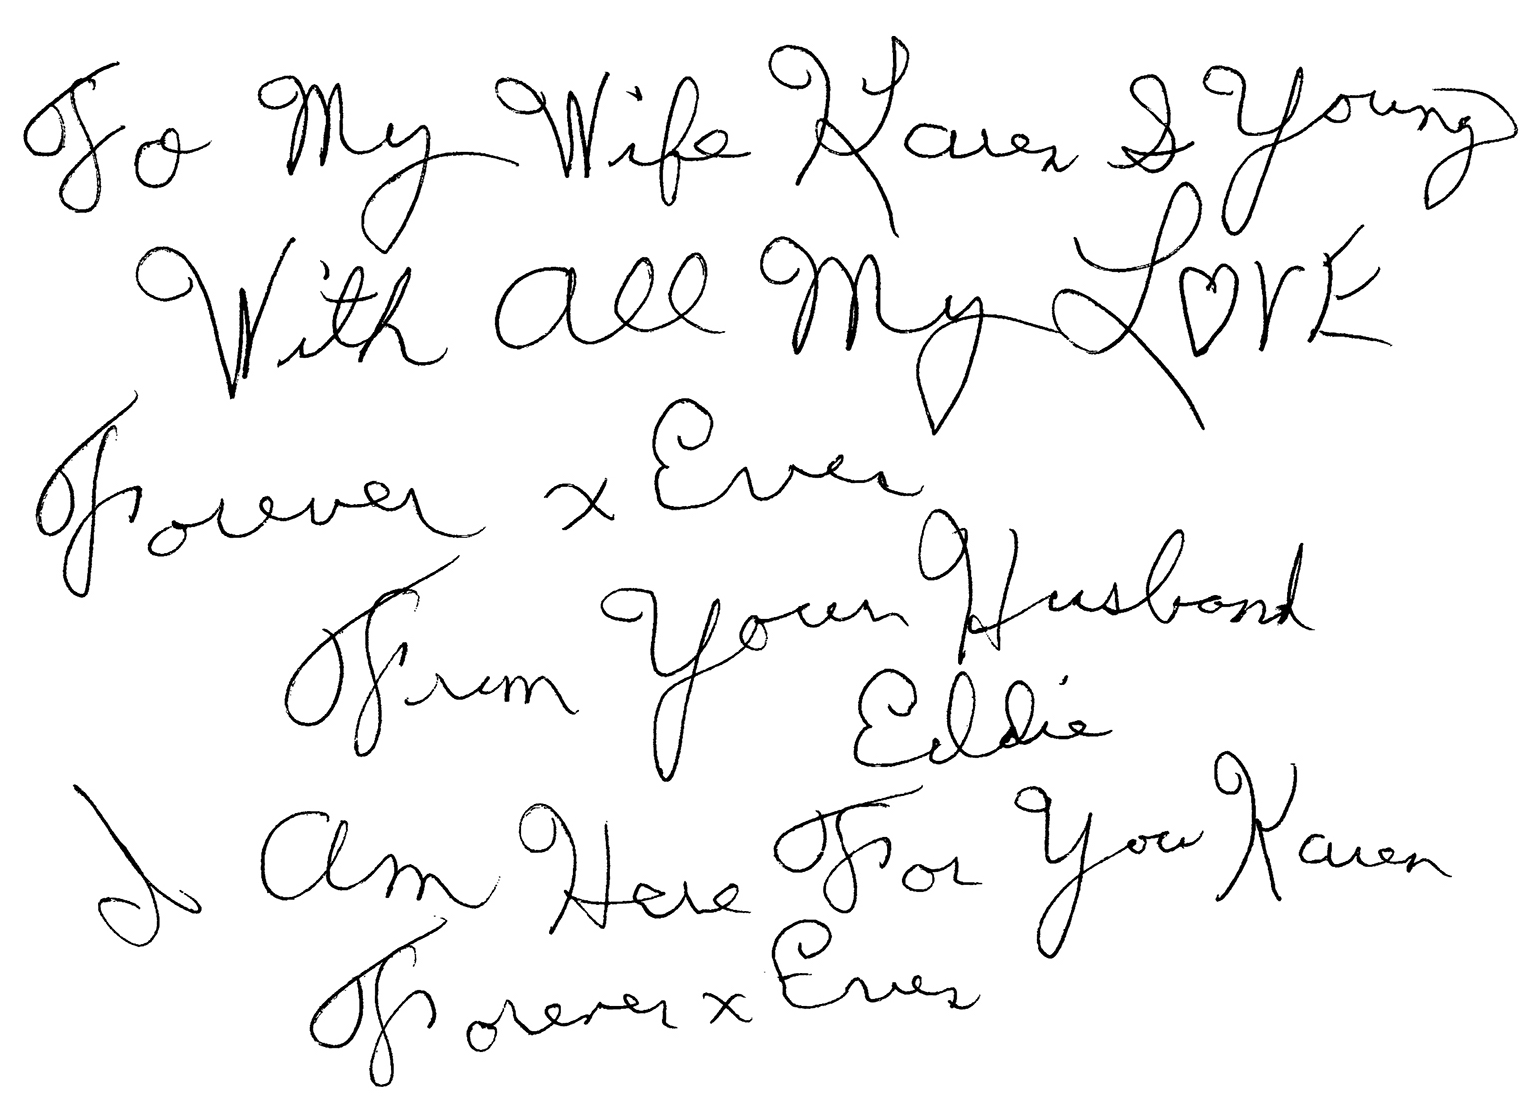 Ed's handwriting reads Fo my wife Karen S Young with all my love forever x ever from your husband Eddie I am here for you Karen forever x ever